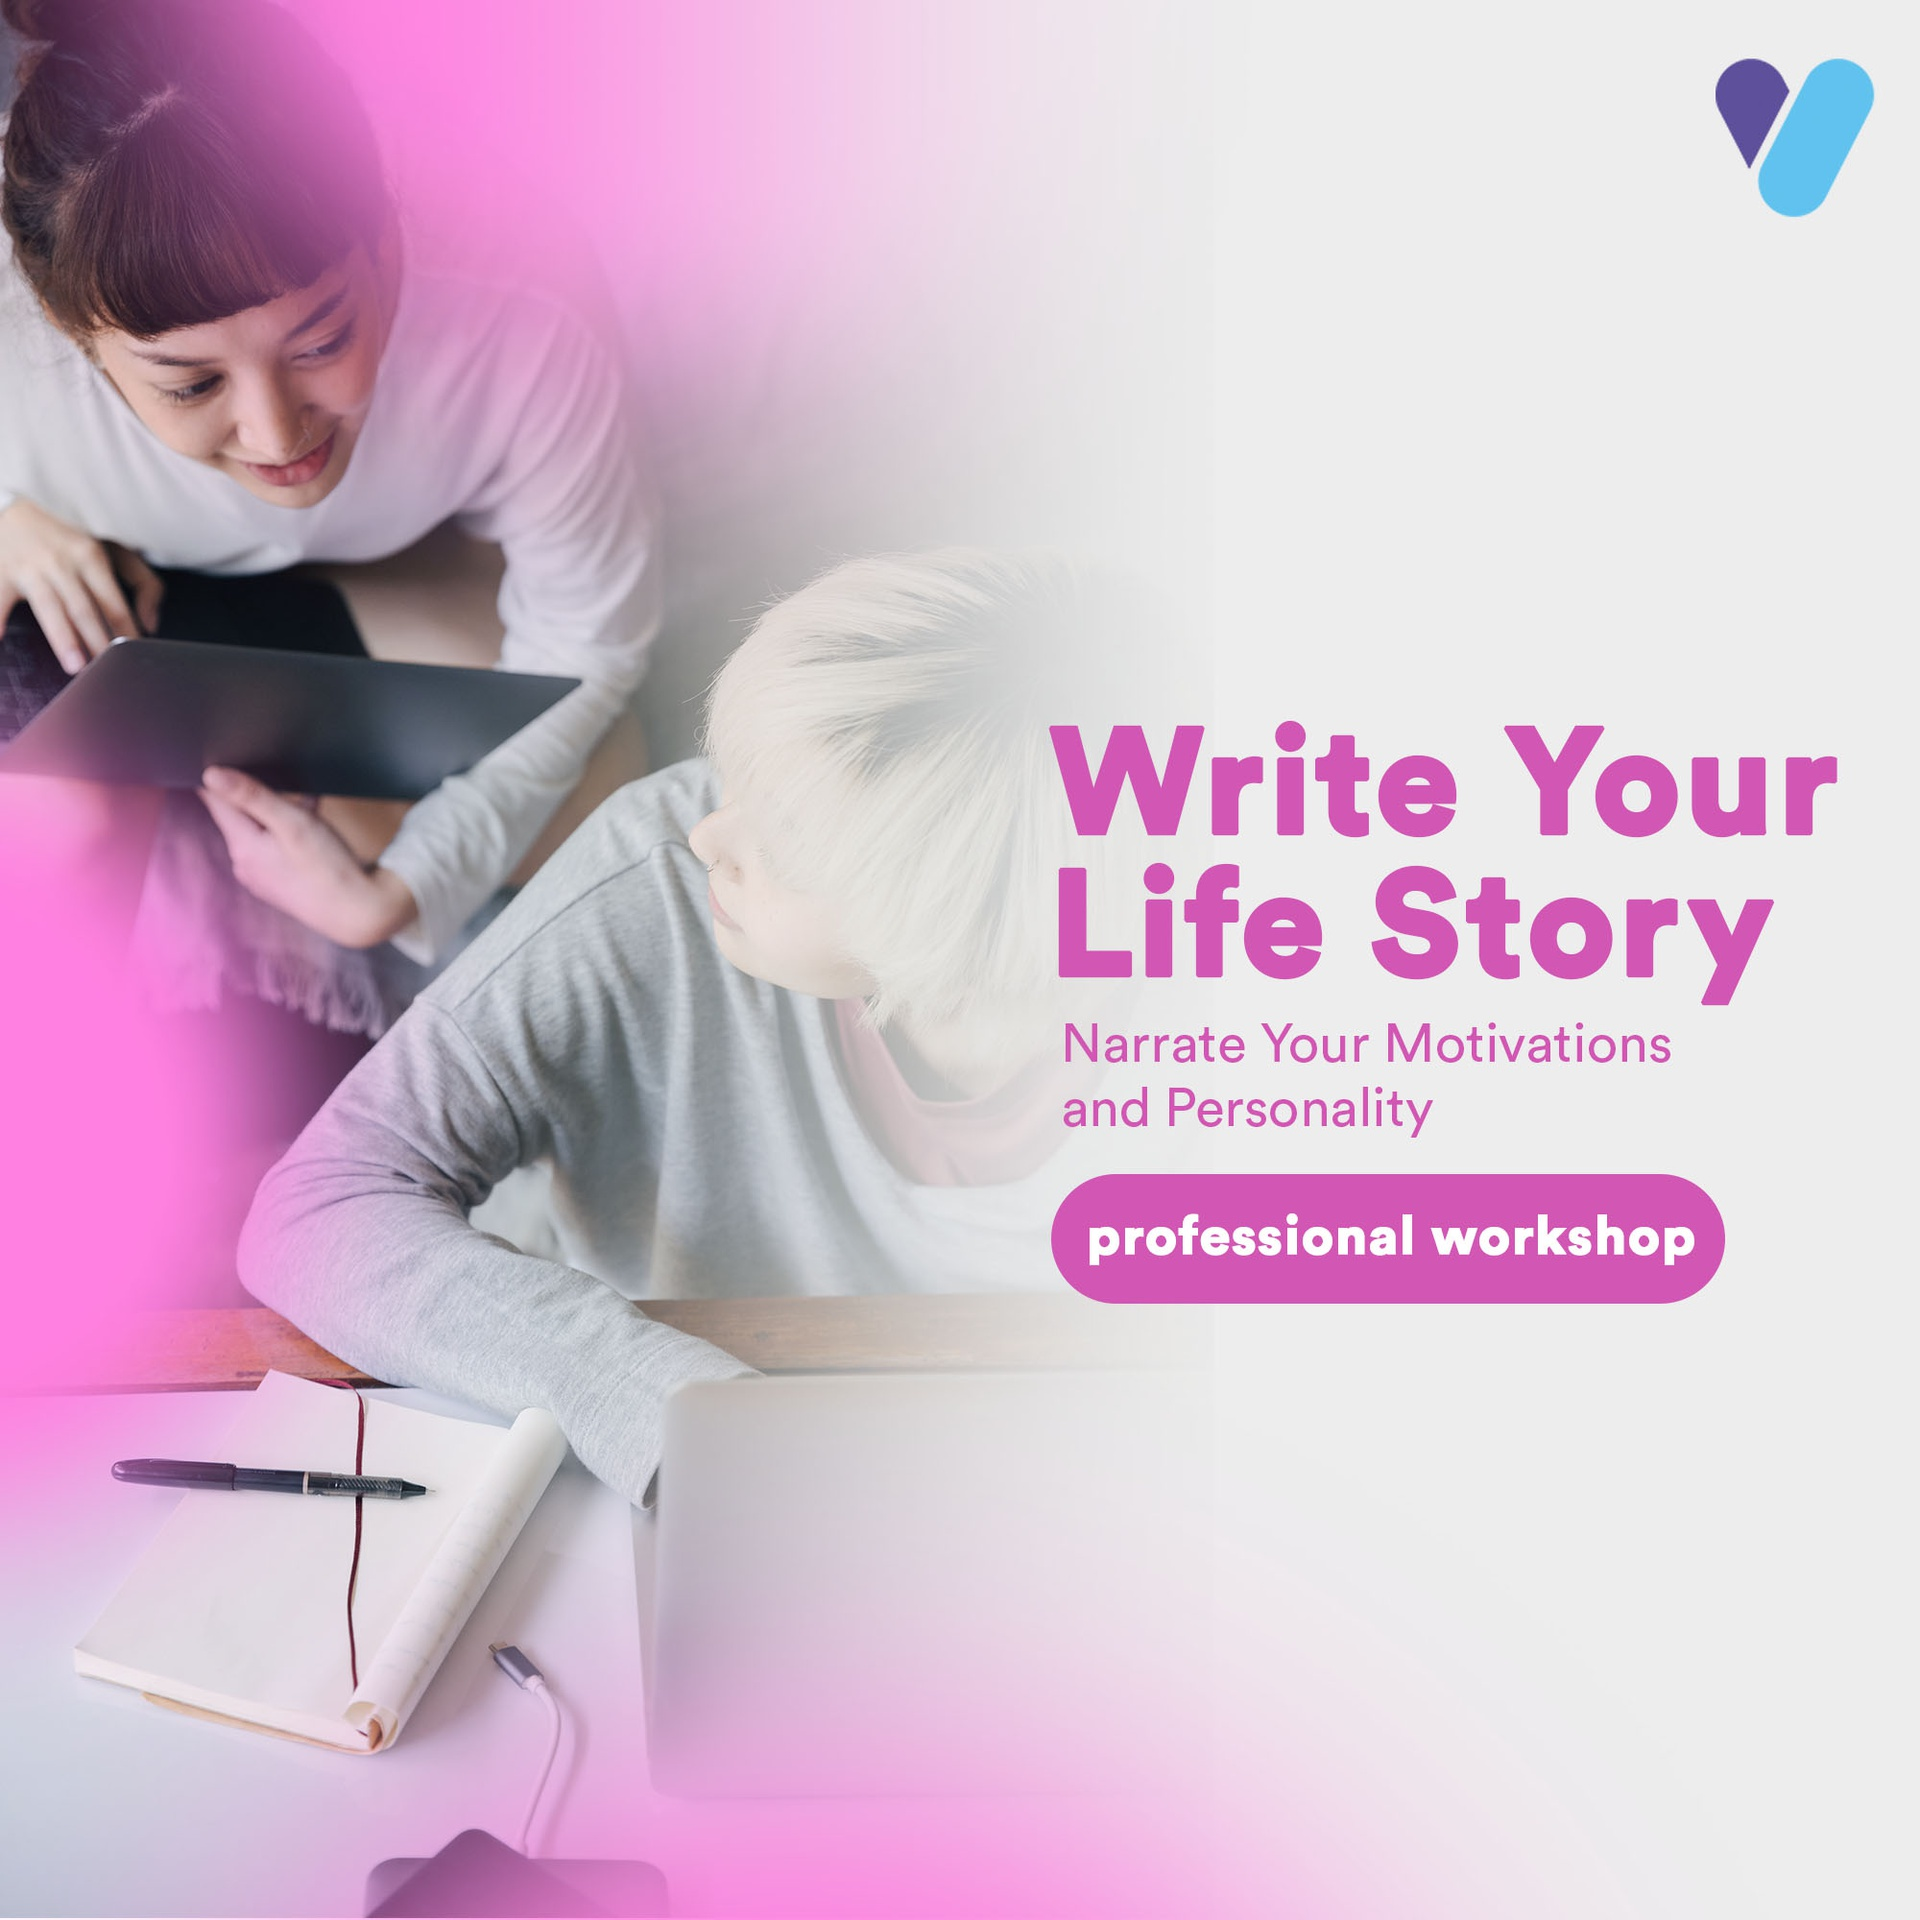 Write Your Life Story: Narrate Your Motivations and Personality